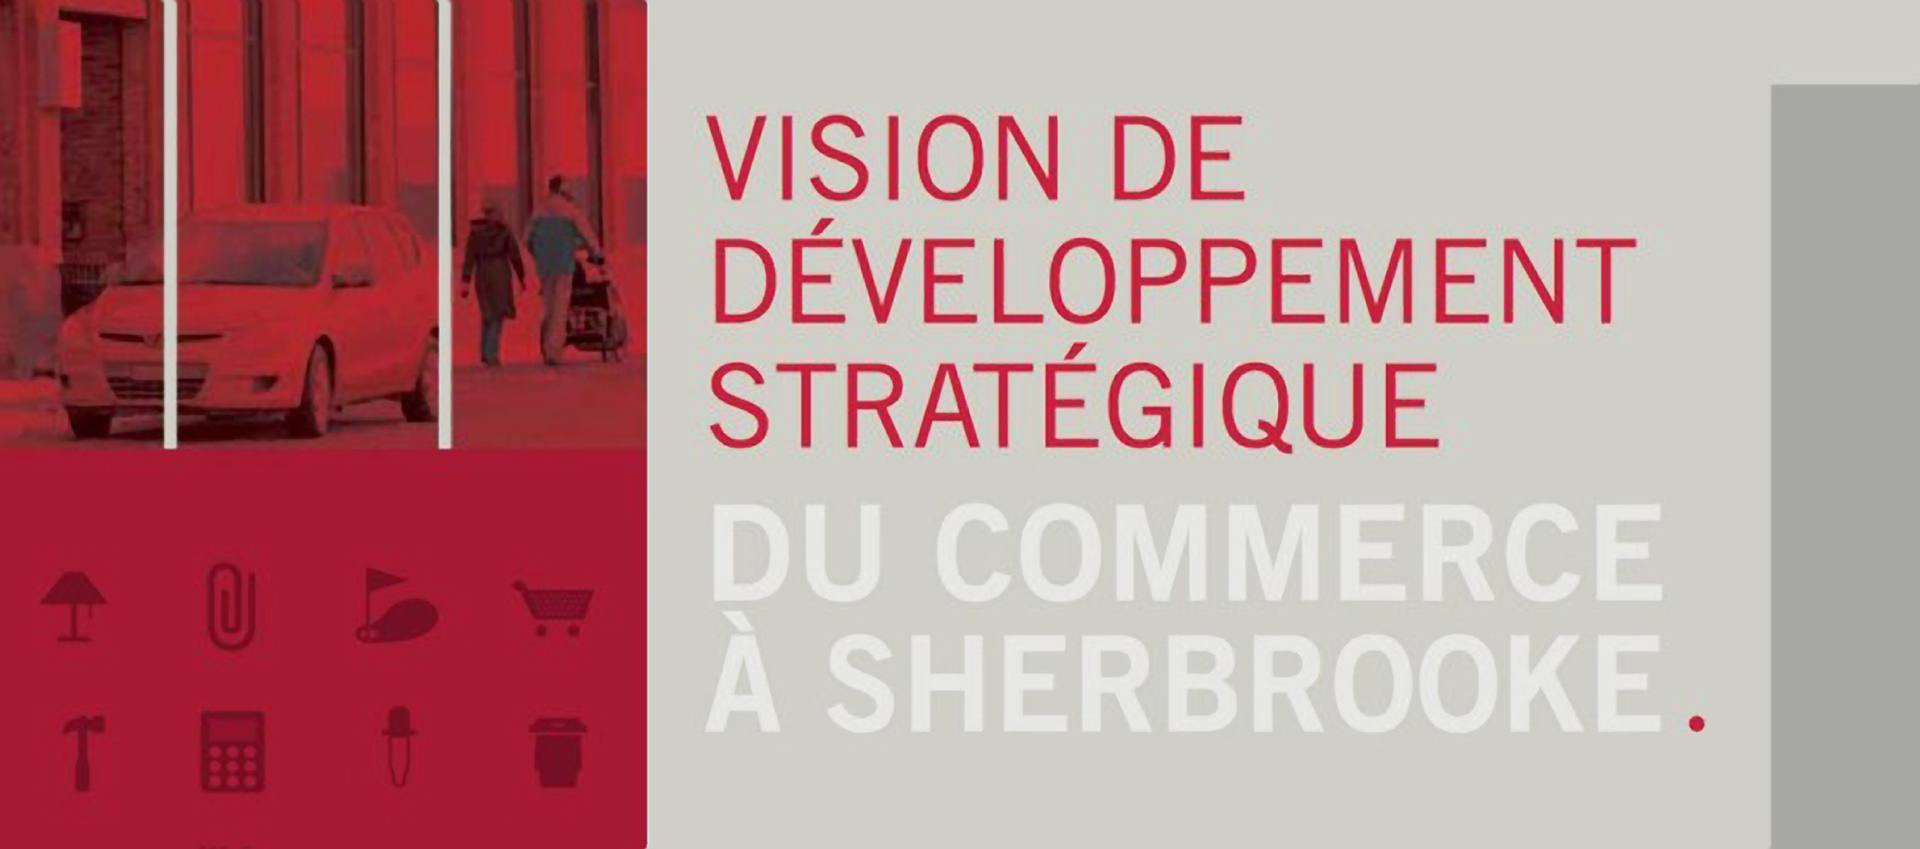 Commerce Sherbrooke * Develop * Analyze * Dynamize 819 822-6082 Business development Commerce Sherbrooke Sherbrooke (819)822-6082